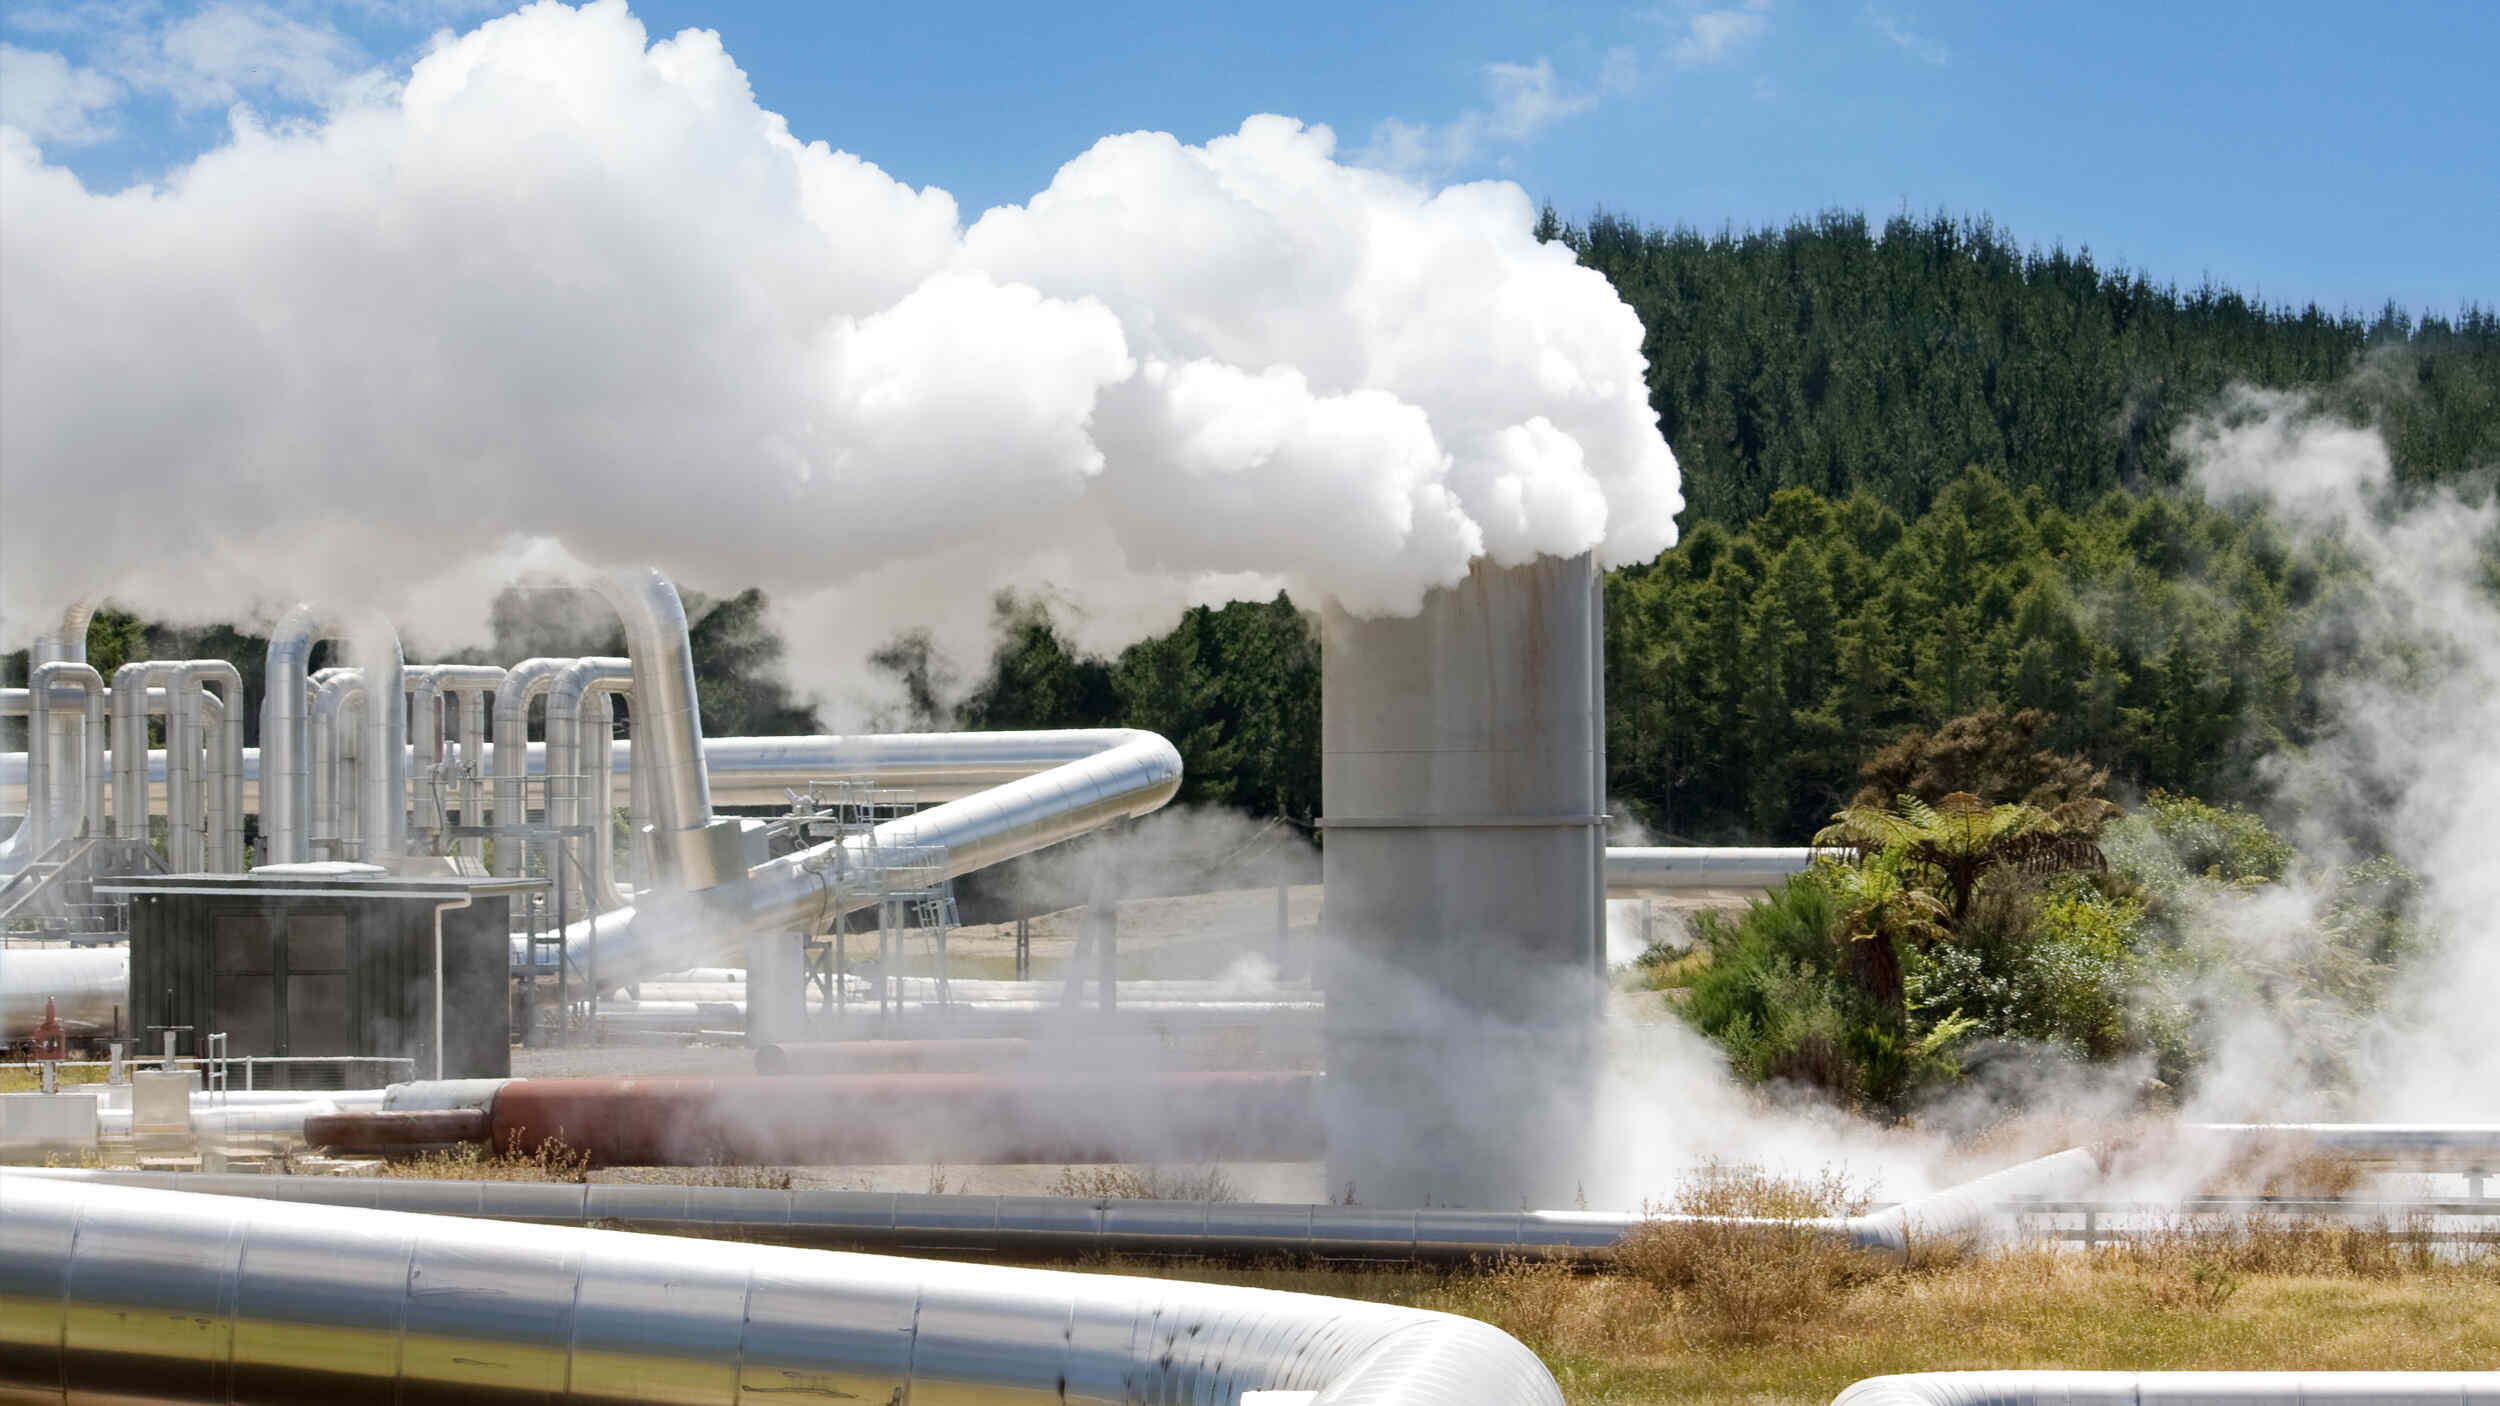 High-efficiency geothermal submersible borehole and surface pumps